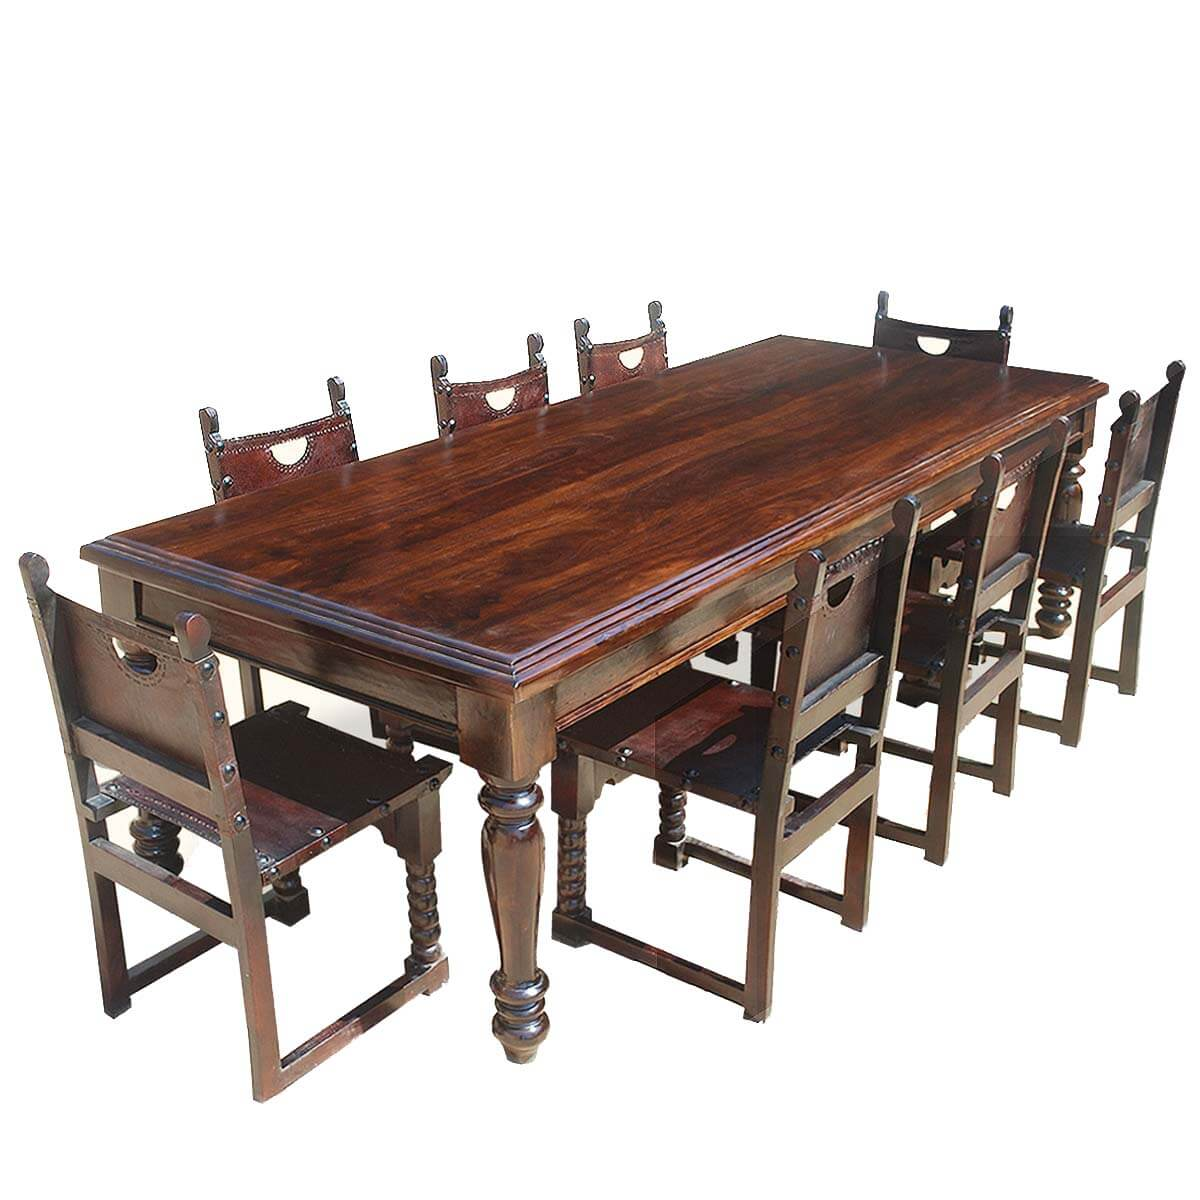 Large rustic solid wood dining room table w 8 leather for Wooden dining room furniture